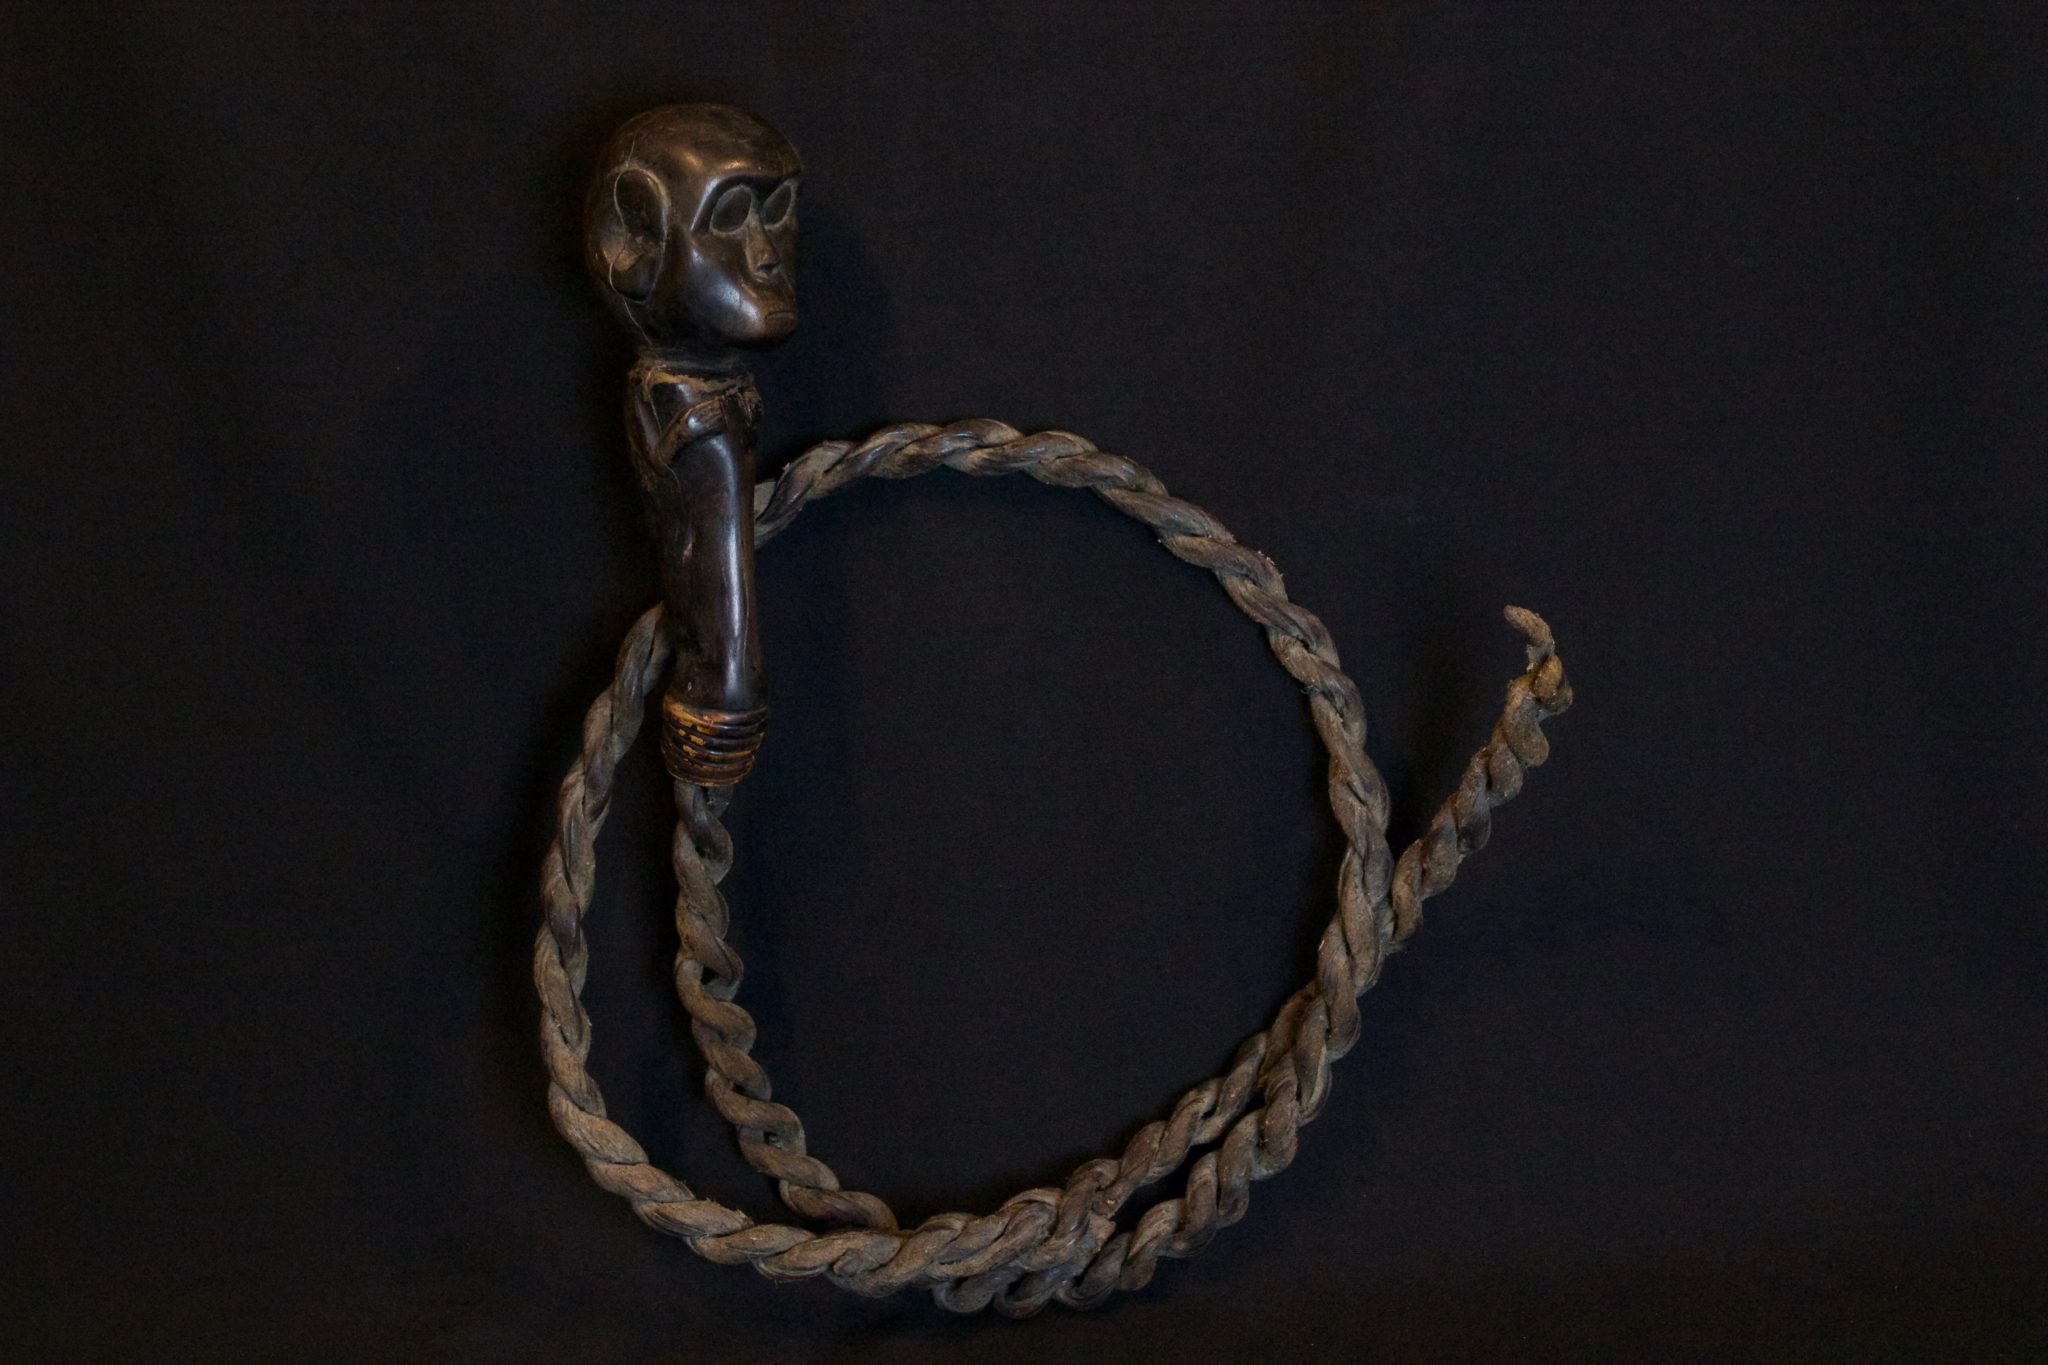 """'Caci', Ritual Fighting Whip - Caci Flores Island, Lesser Sunda Islands, Indonesia Manggarai tribe Early 20th c. Wood, rattan, bark, smooth patina from use and age Caci is a powerful magic whip-fighting ritual performed during a harvest festival with complex ritual preparations. It is played by 2 men, usually from different villages. The Whip symbolizes the male phallus, the father and the sky. The shield used with it symbolizes the female, the womb and the earth. These elements are united when the whip hits the shield symbolizing life giving sexual unity. It is a playful event but any blood shed is considered an offering to the ancestors who will then ensure fertility of the land. 14"""" x 10"""" x 2 ½"""" $520."""